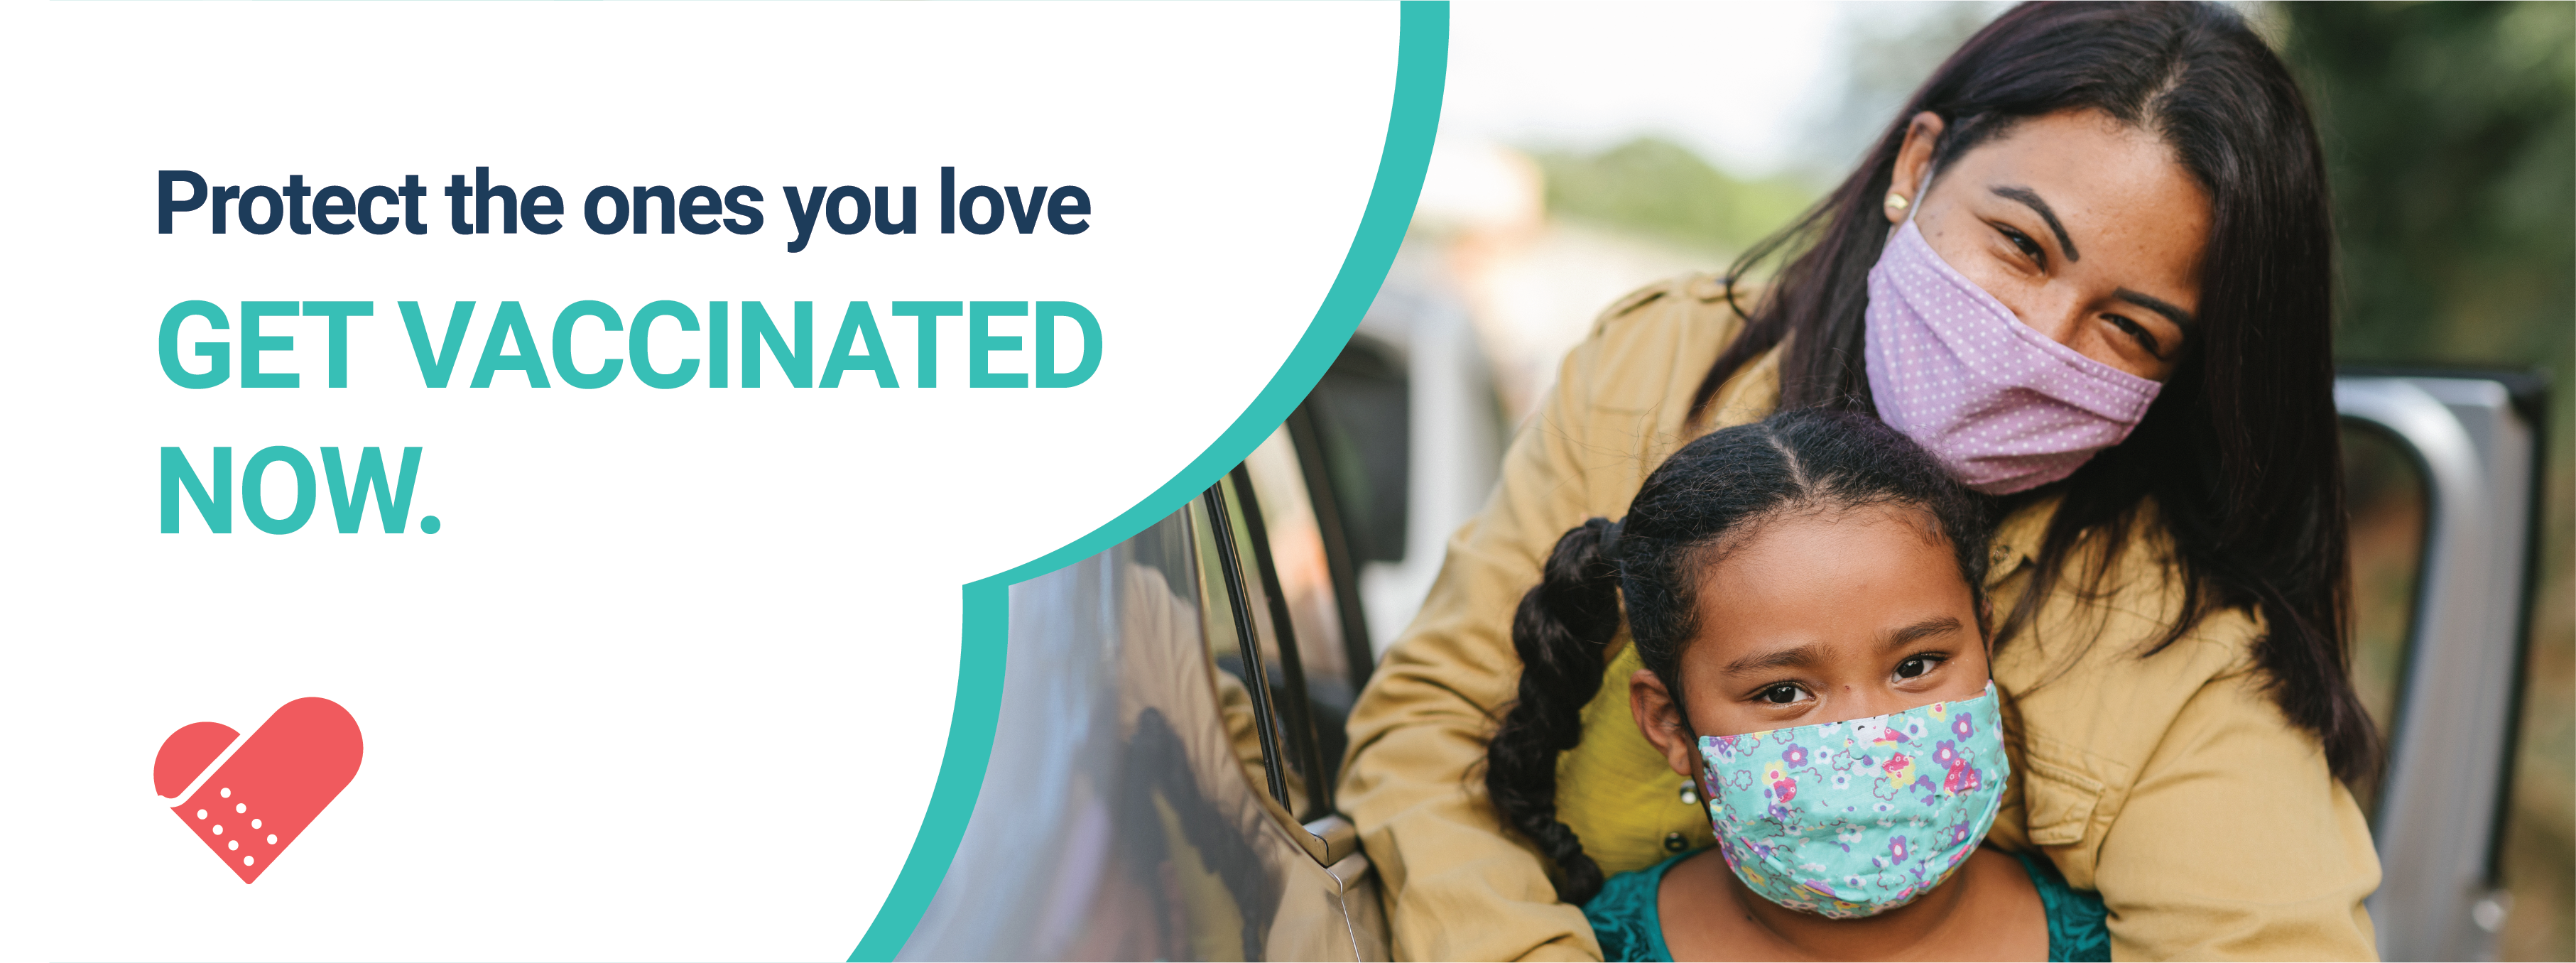 """Picture of a mixed race or latina mother, outside of her car, hugging her 8-year old daughter. They both wear face masks and seem to be smiling. On the right, an inverted heart design pattern with the words """"Protect the ones you love. Get Vaccinated Now."""". At the bottom, the campaign logo, a band-aid in the form of a heart."""